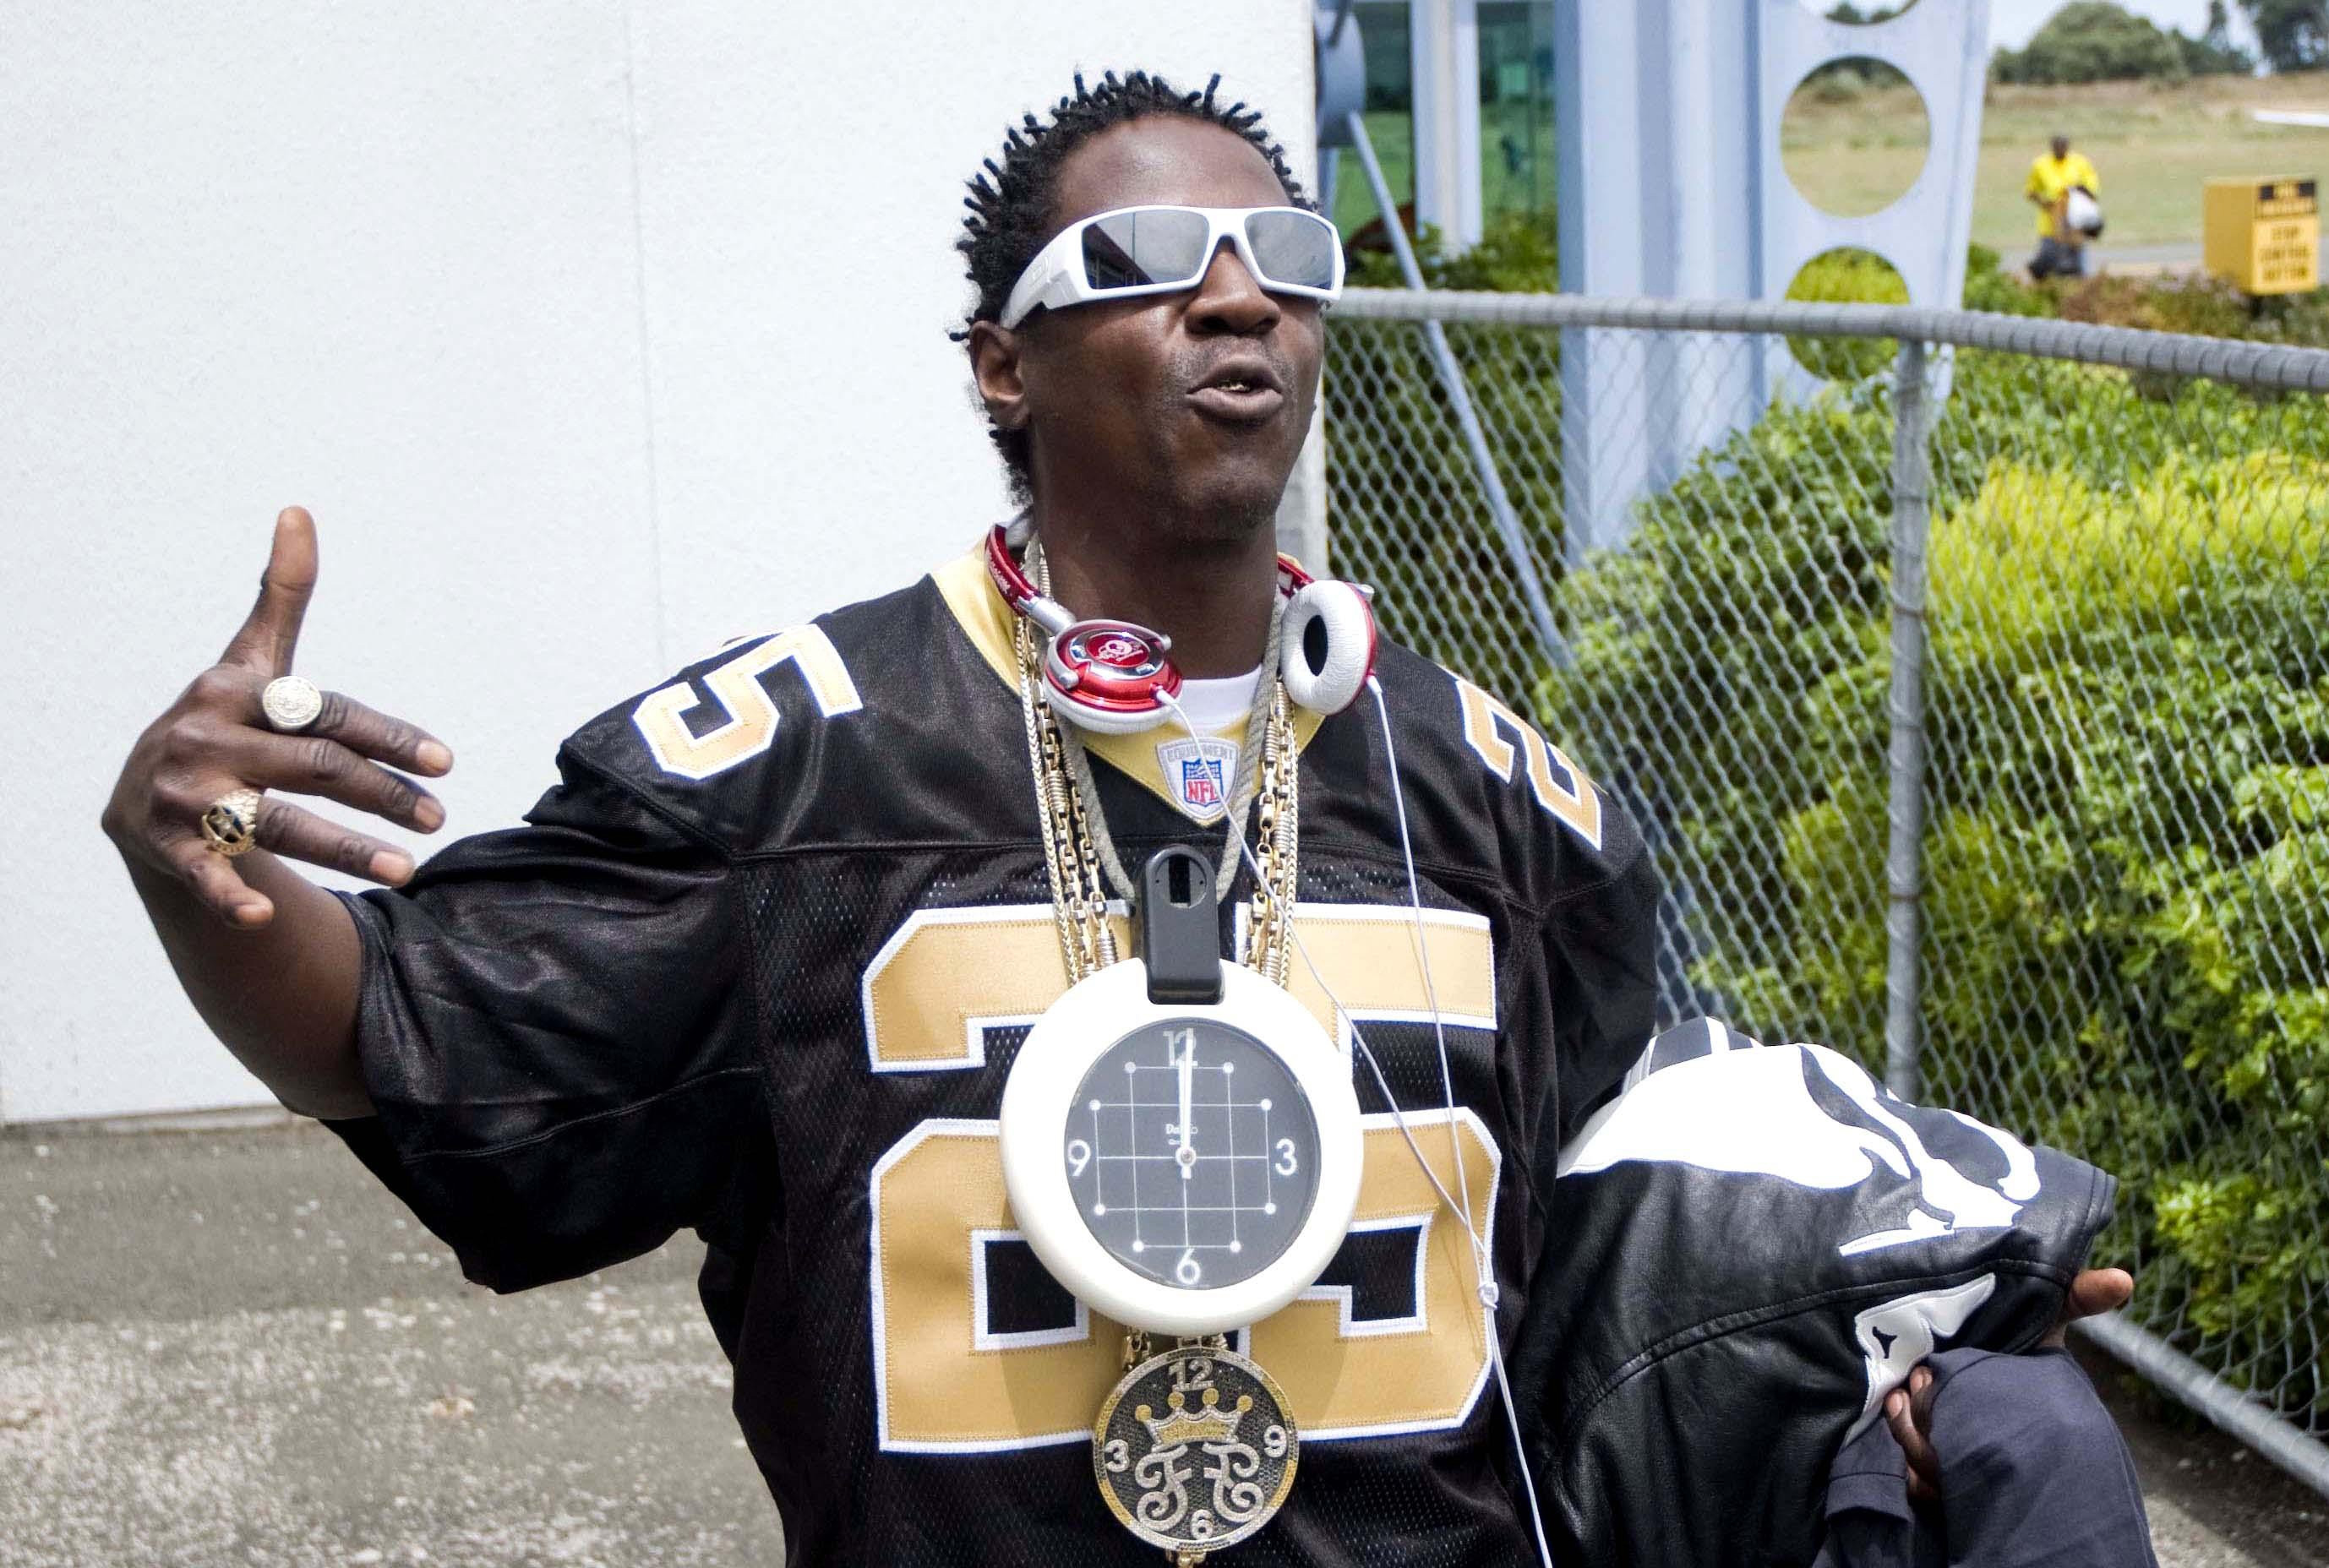 Public Enemy's April Fools' reveal? Flavor Flav was never fired